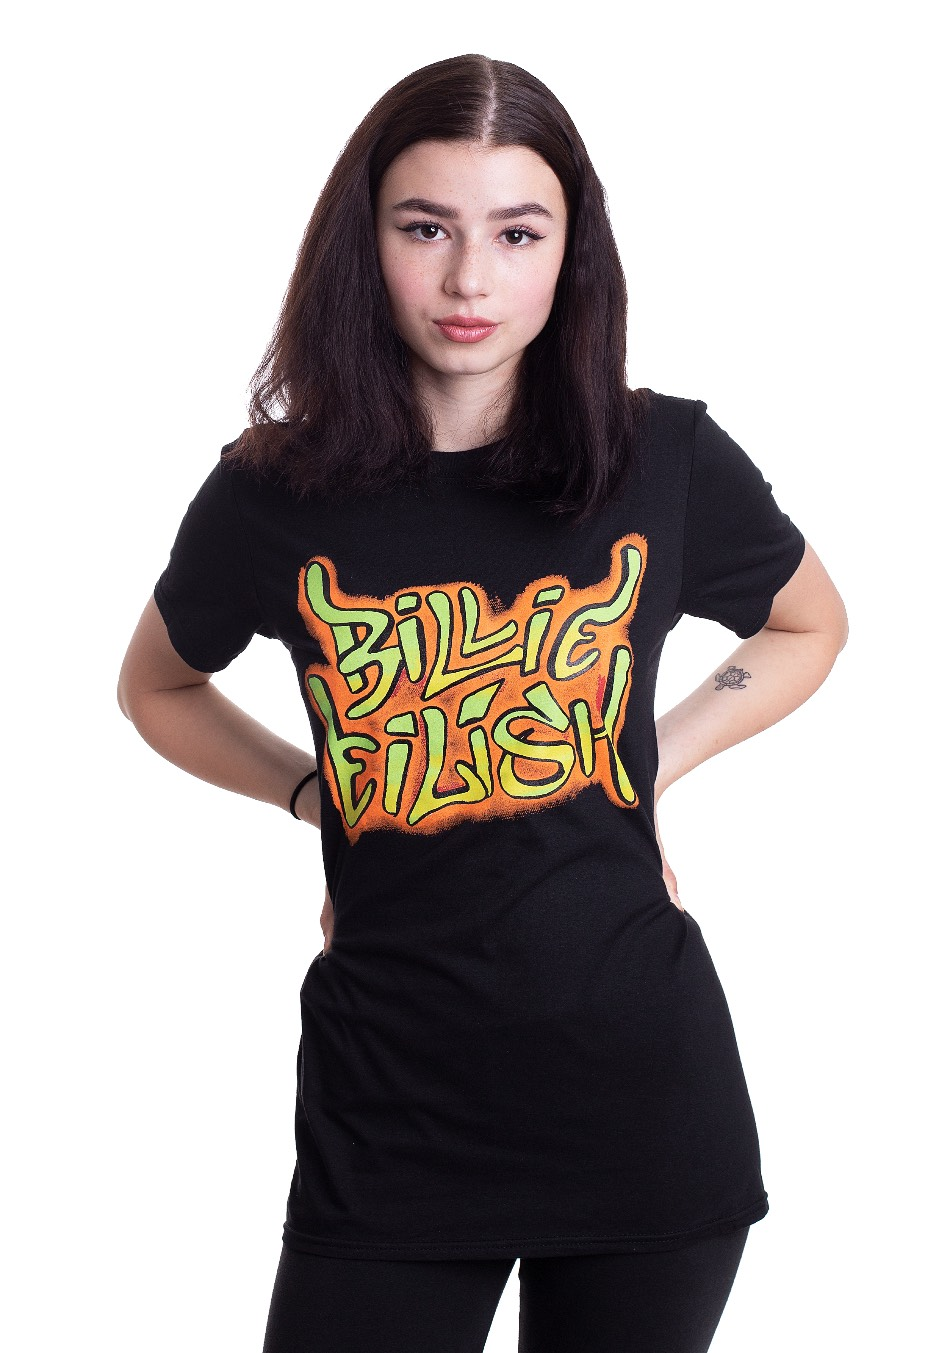 Billie Eilish Graffiti T Shirt Offizielles Pop Merchandise Impericon Com De